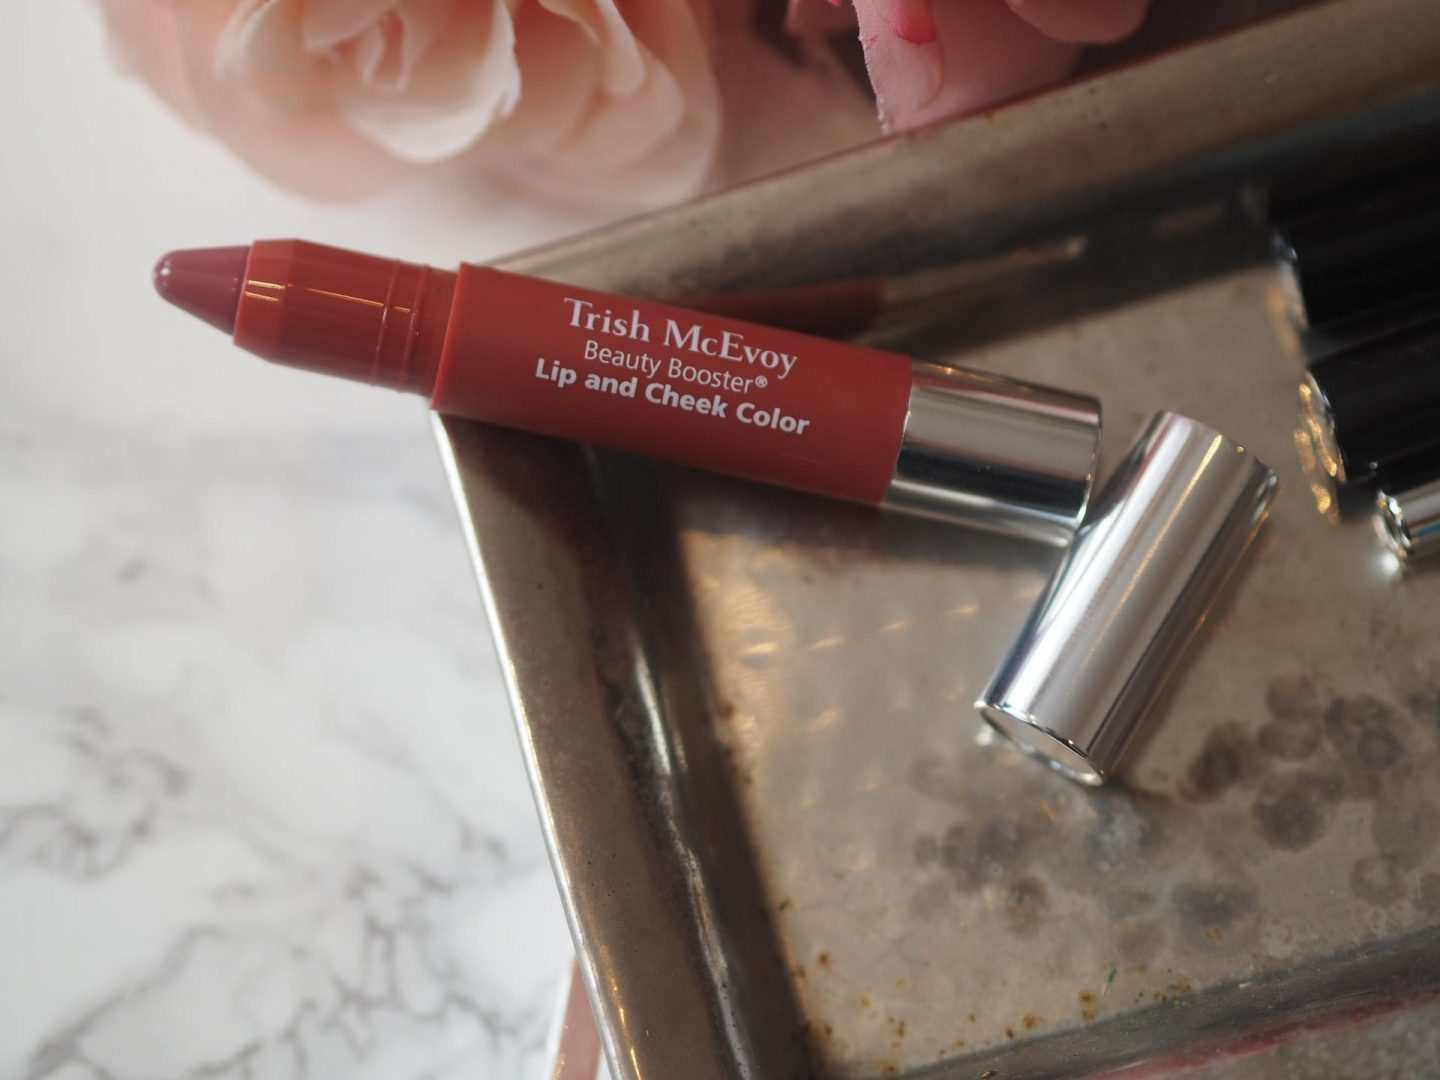 Trish McEvoy Beauty Booster Lip and Cheek Color – Perfect Plum